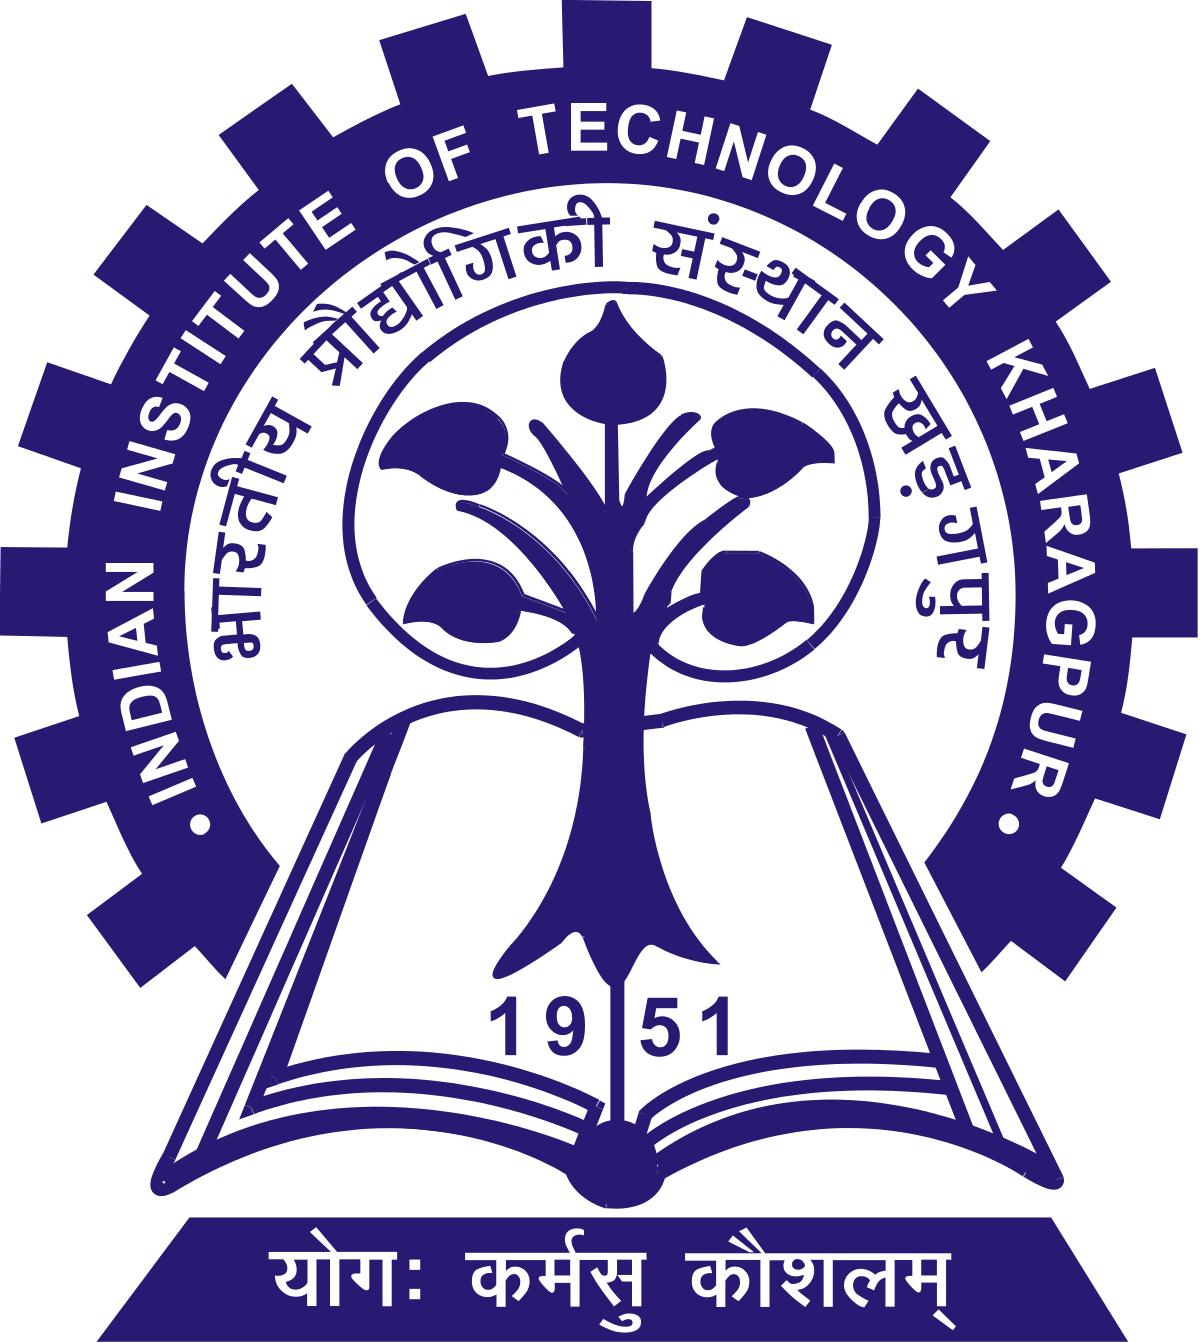 Course on Mines Safety and Legislation at IIT Kharagpur [Jun 2-6]: Registrations Open